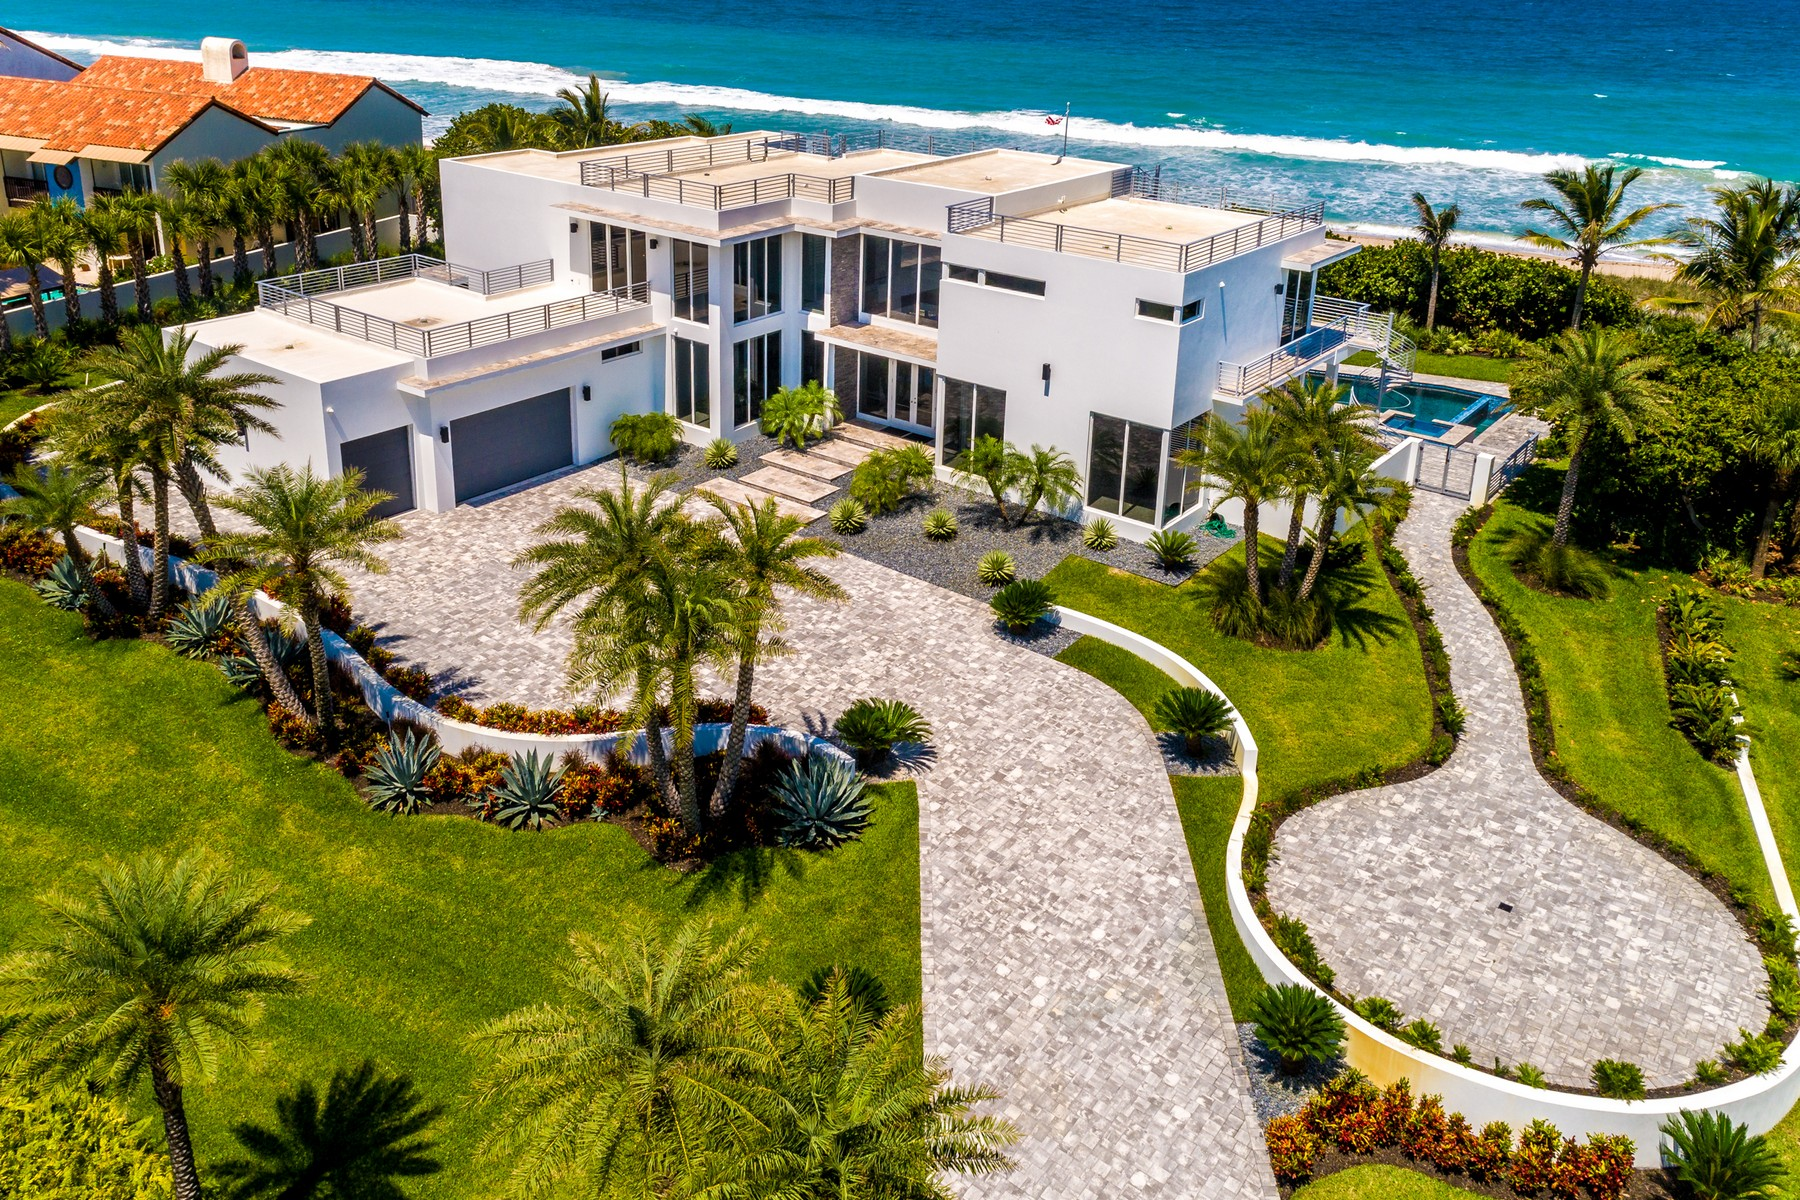 Property for Sale at Modern Masterpiece with Captivating Panoramic Ocean and River Views 9445 Highway A1A Melbourne Beach, Florida 32951 United States